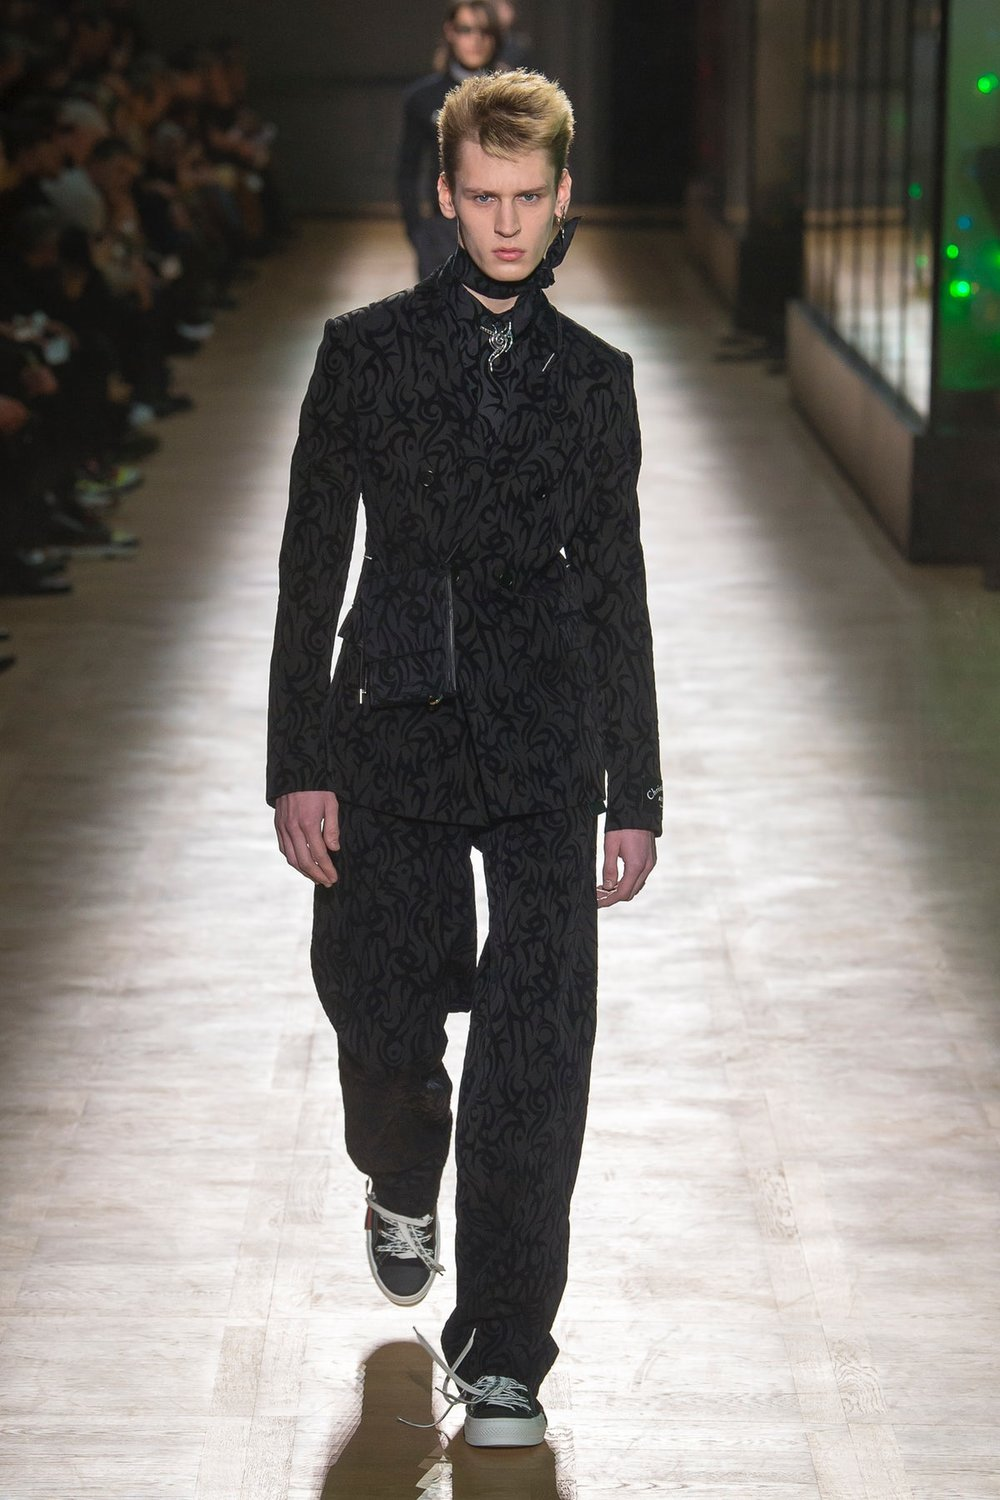 dior_homme_look_45_menswear_autumn_2018.jpeg